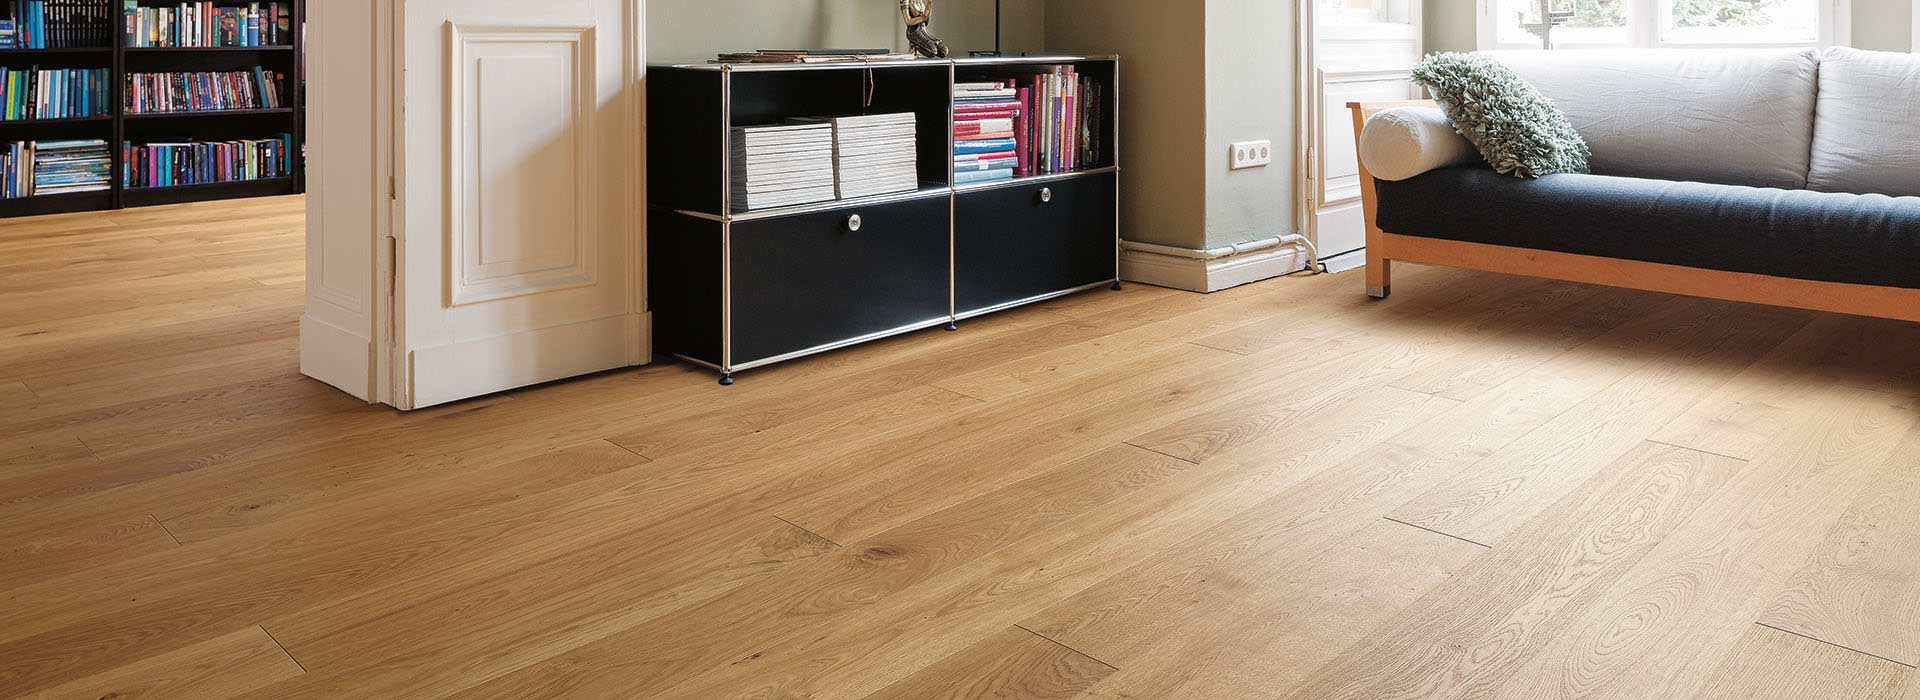 Haro Parquet Wood Flooringall you need to know about the construction and warranty of haro 3